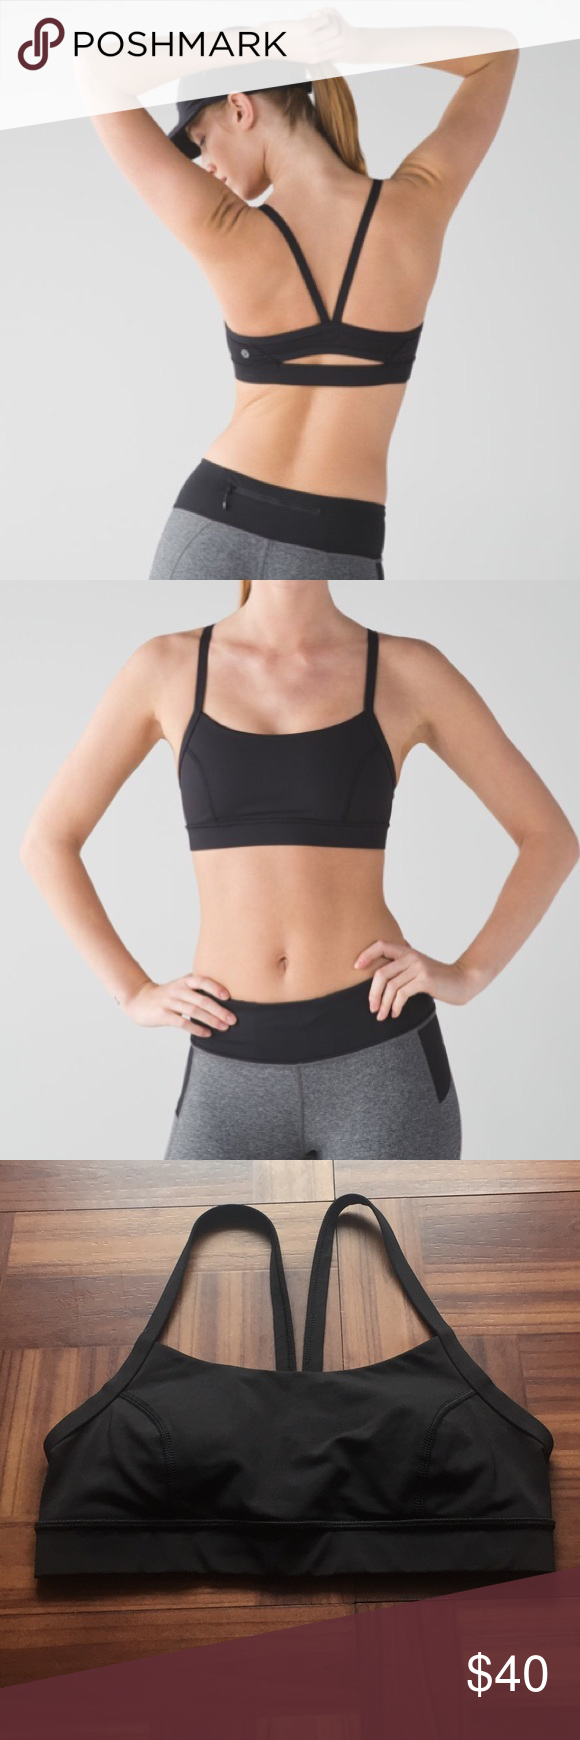 f49b2d342 Lululemon Rise and Run Bra Lululemon rise and run bra